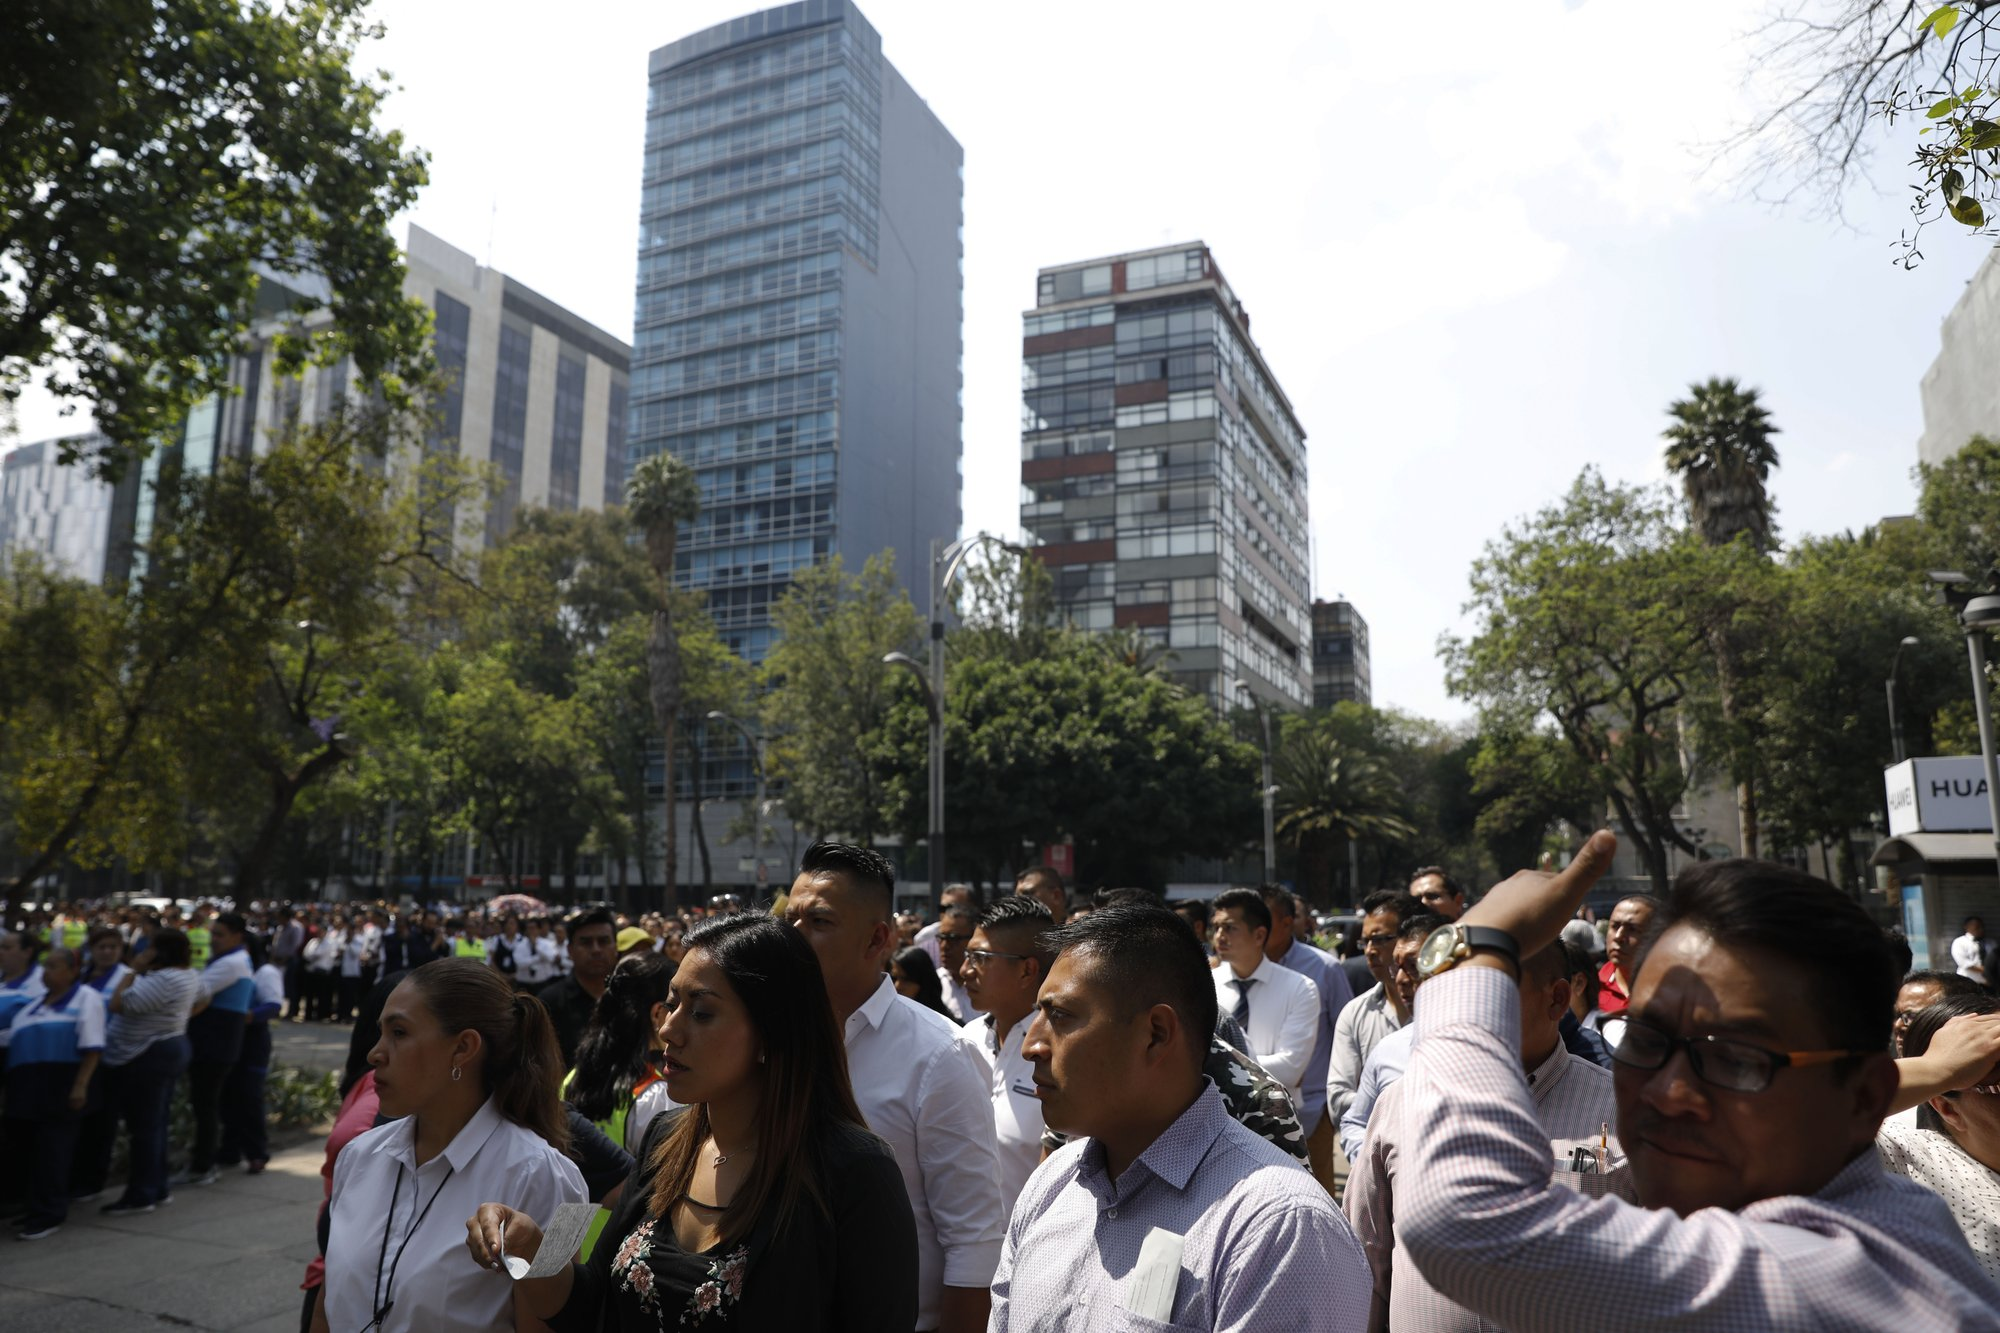 Quake sways buildings in Mexico City; some evacuations